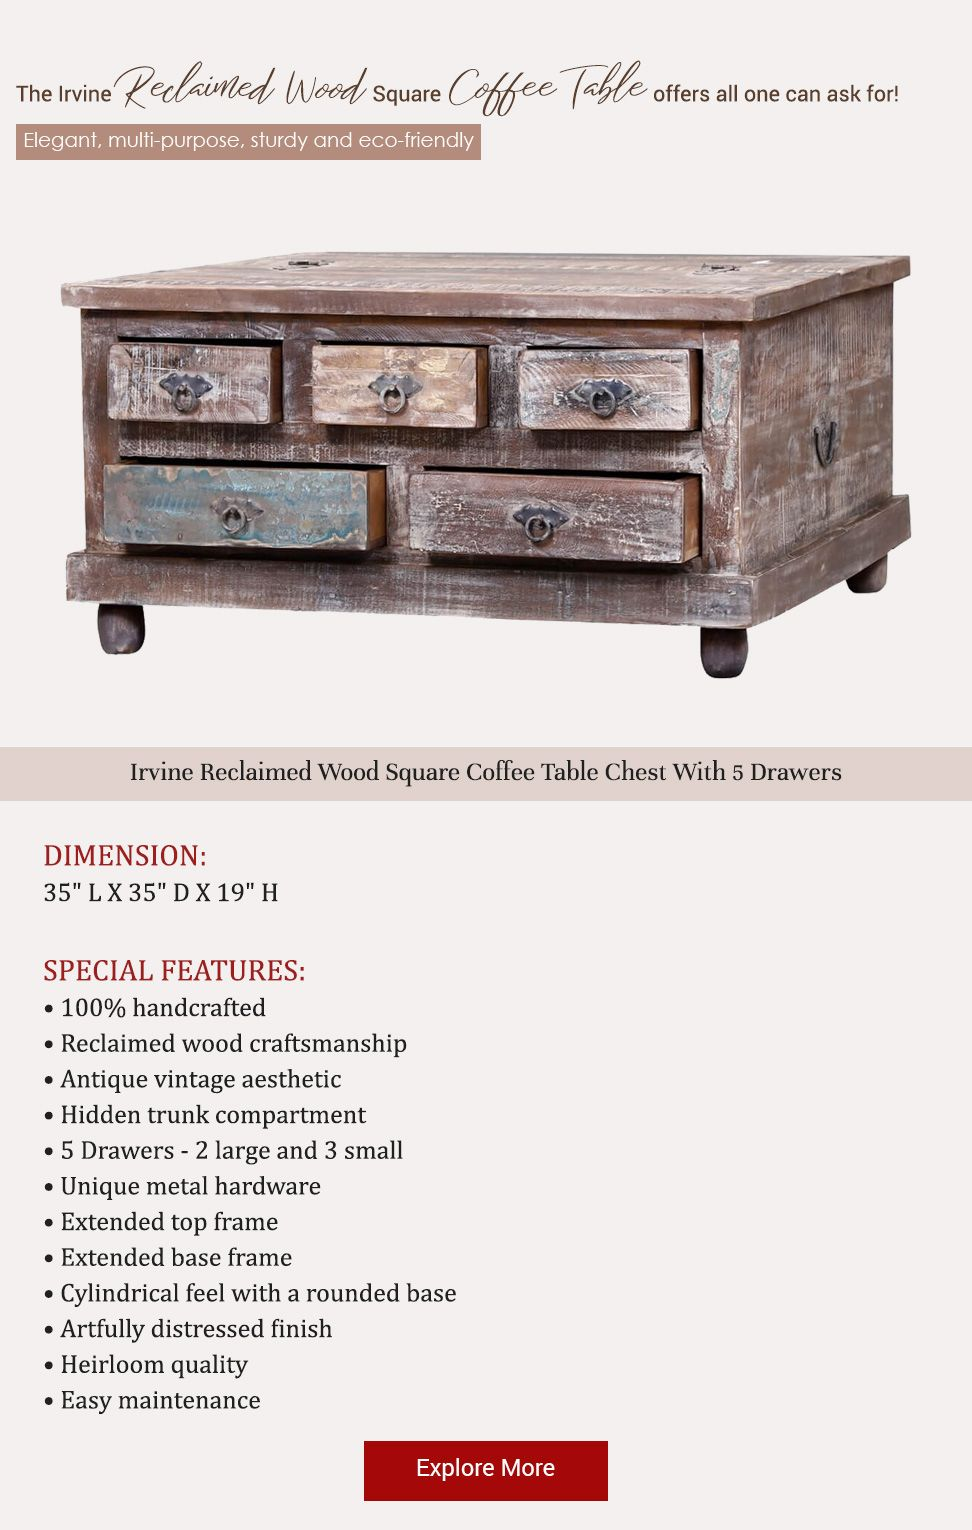 Irvine Reclaimed Wood Square Coffee Table Chest With 5 Drawers Chest Coffee Table Coffee Table Square Coffee Table With Drawers [ 1530 x 972 Pixel ]